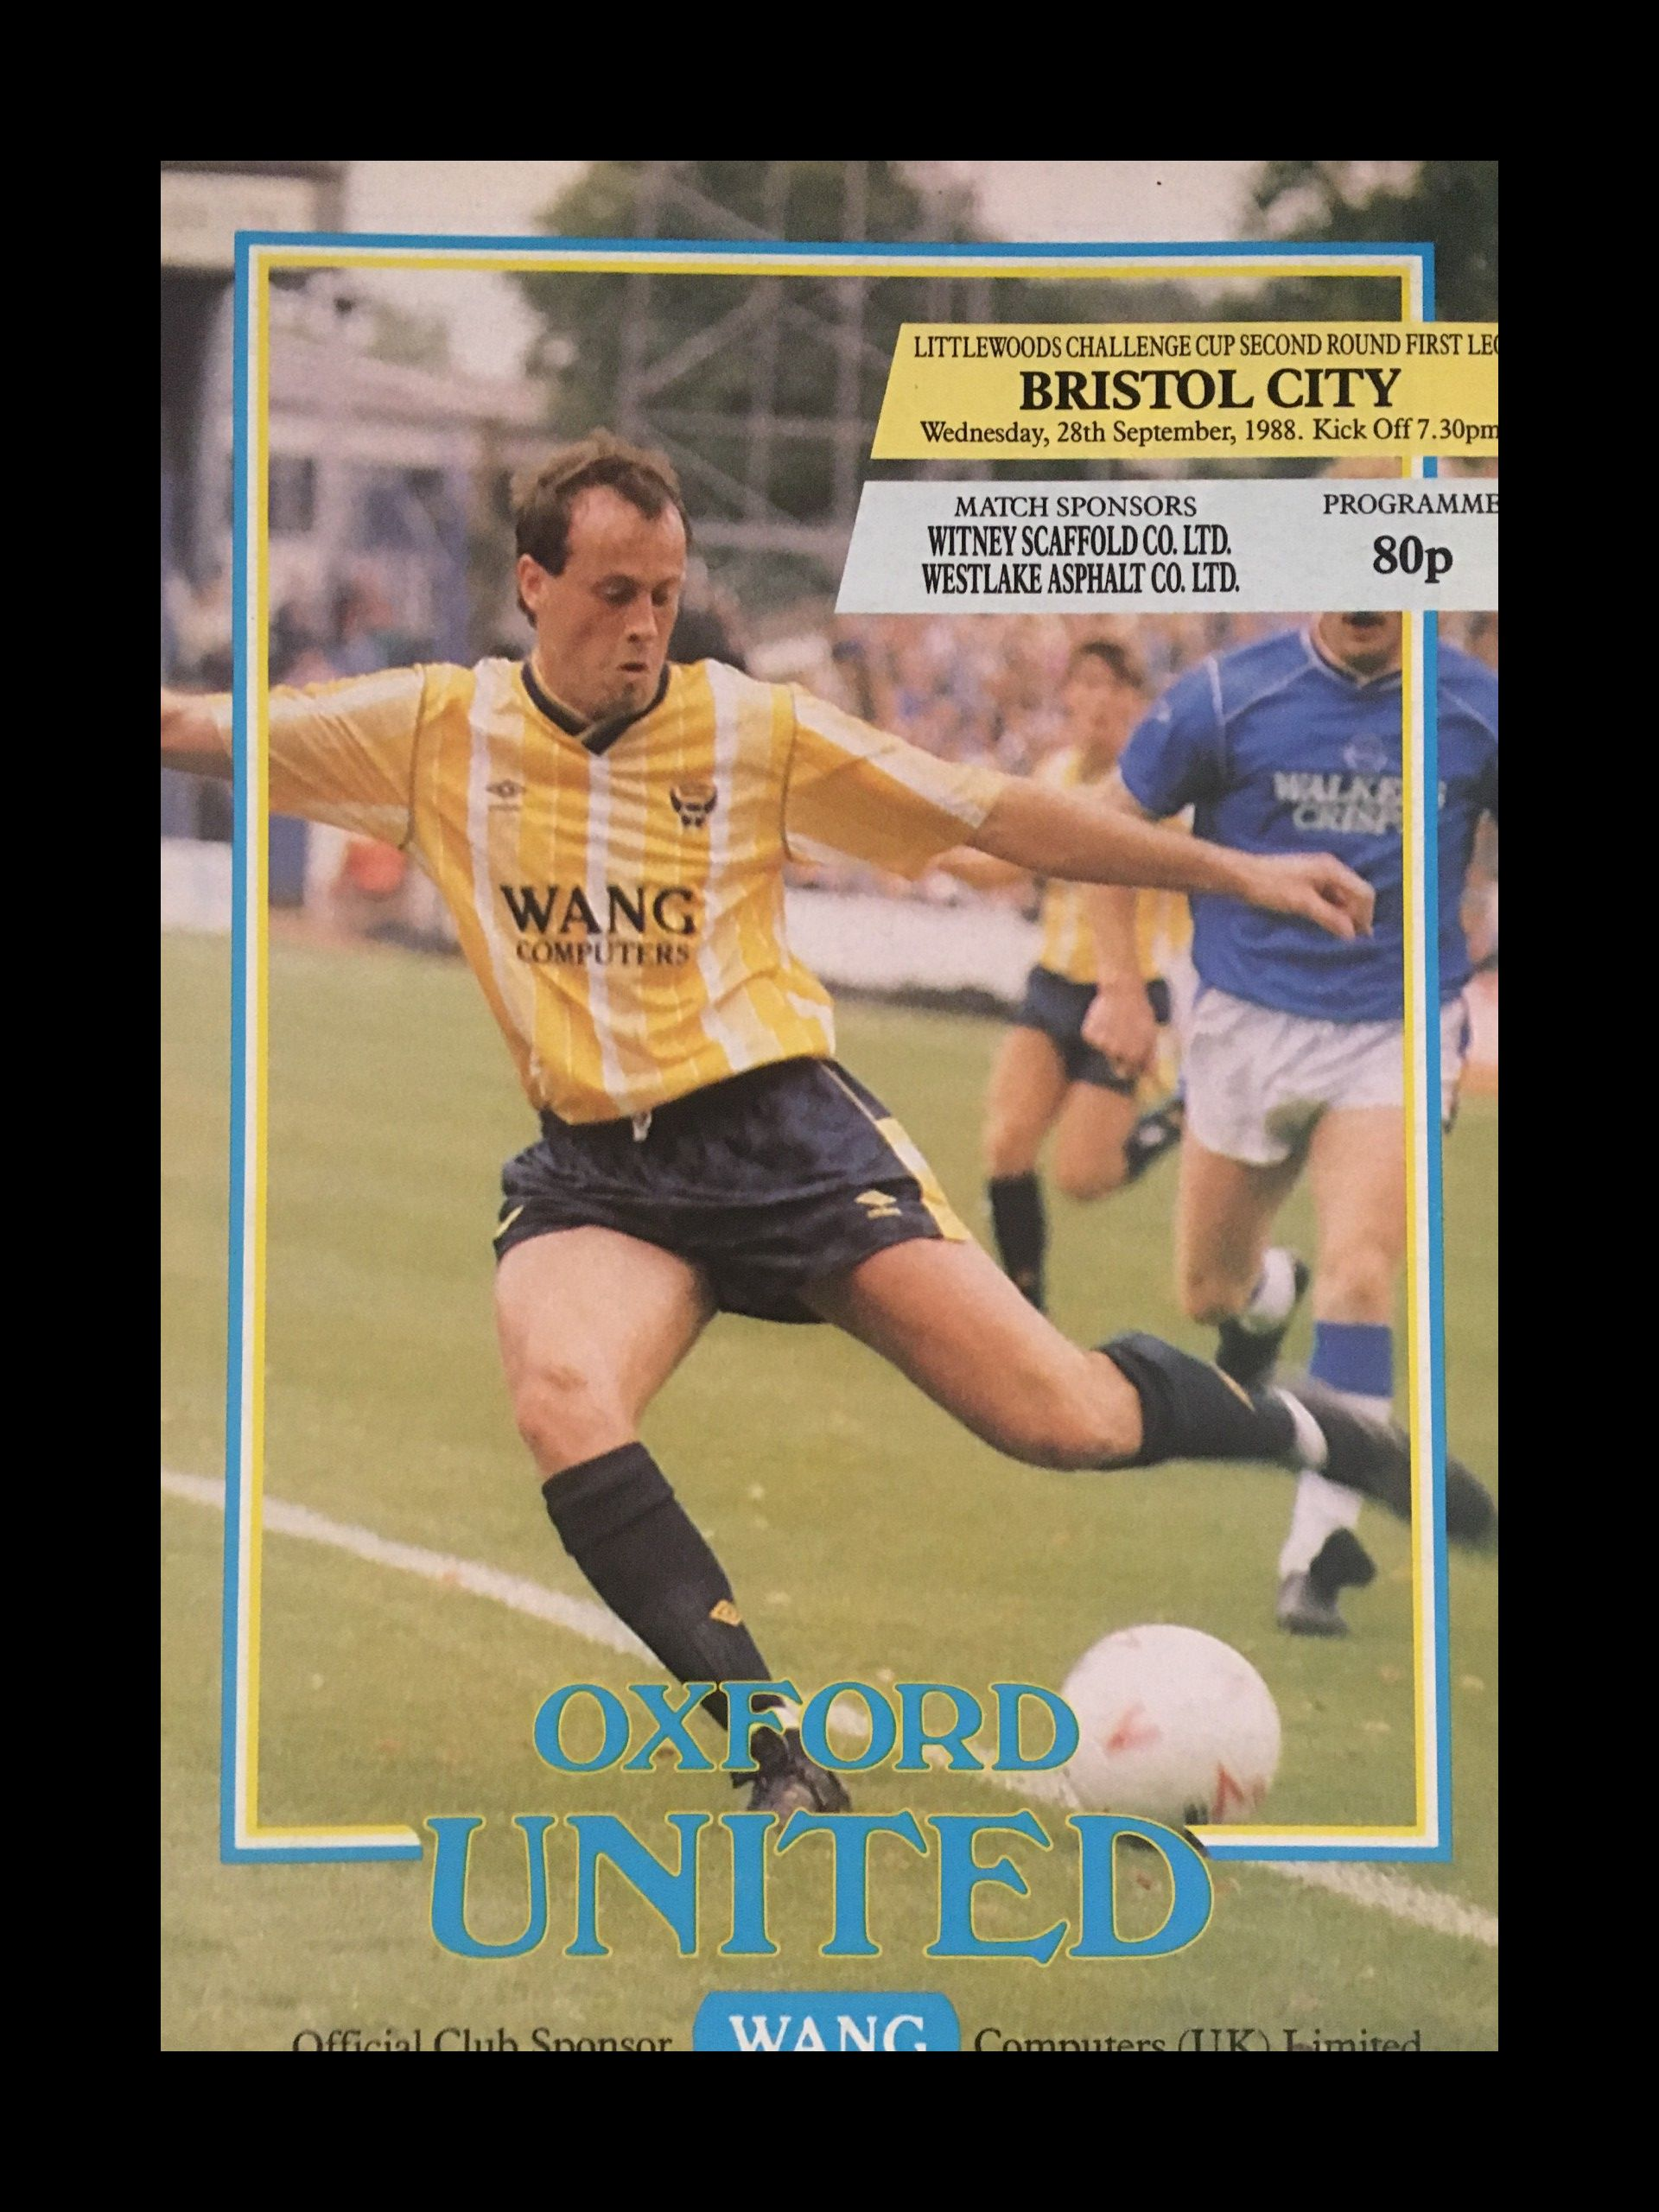 Oxford United v Bristol City 28-09-1988 Programme